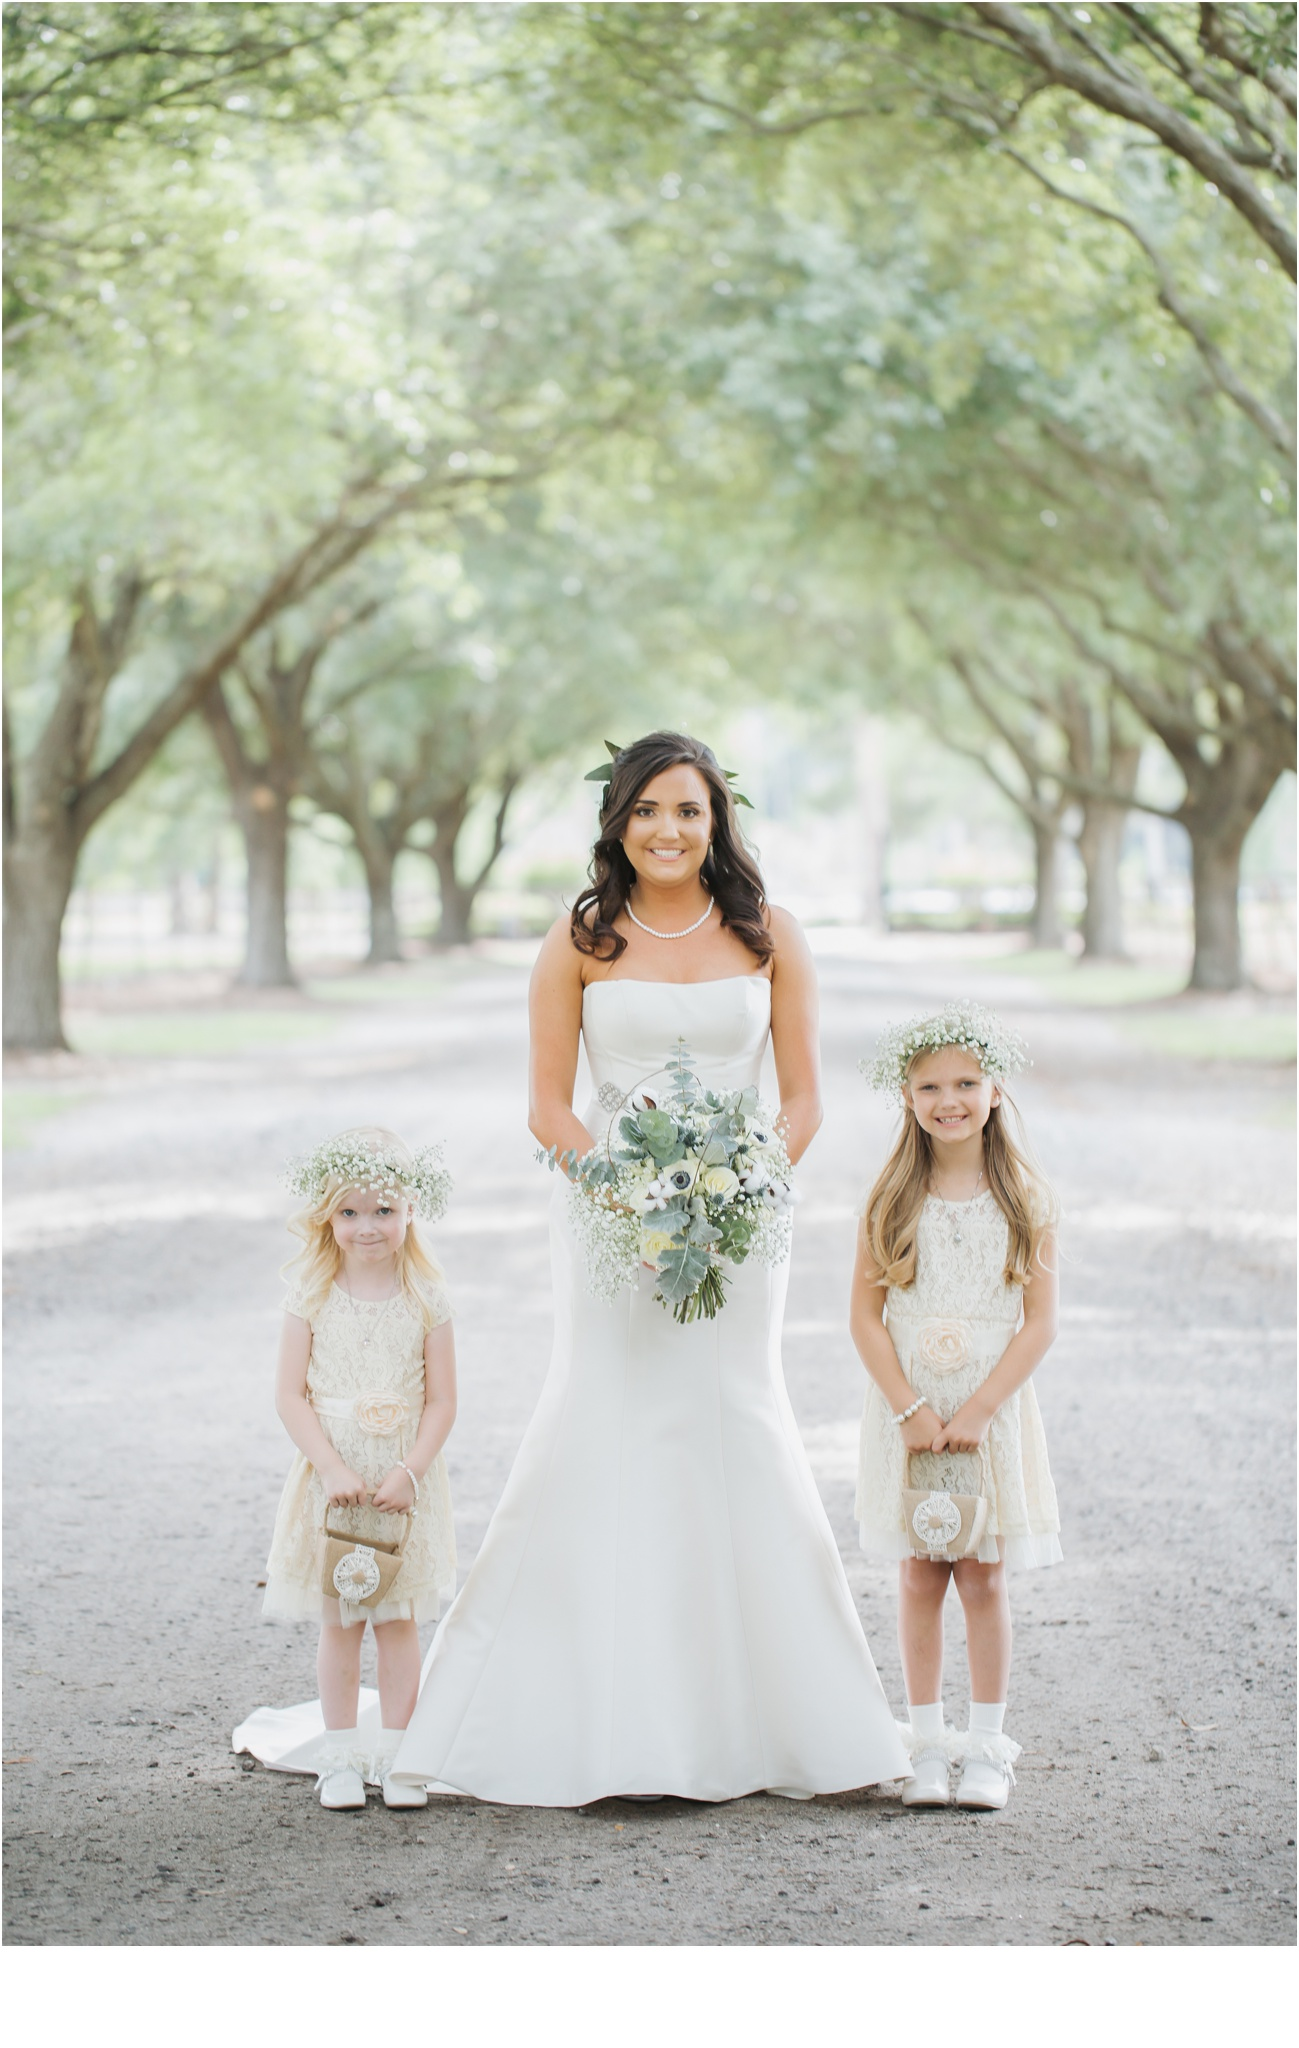 Rainey_Gregg_Photography_St._Simons_Island_Georgia_California_Wedding_Portrait_Photography_0911.jpg